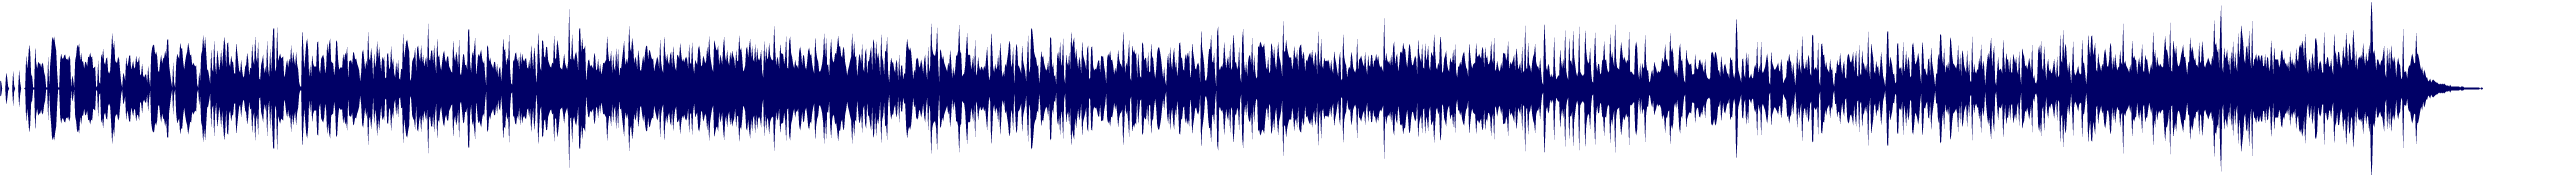 waveform of track #66255